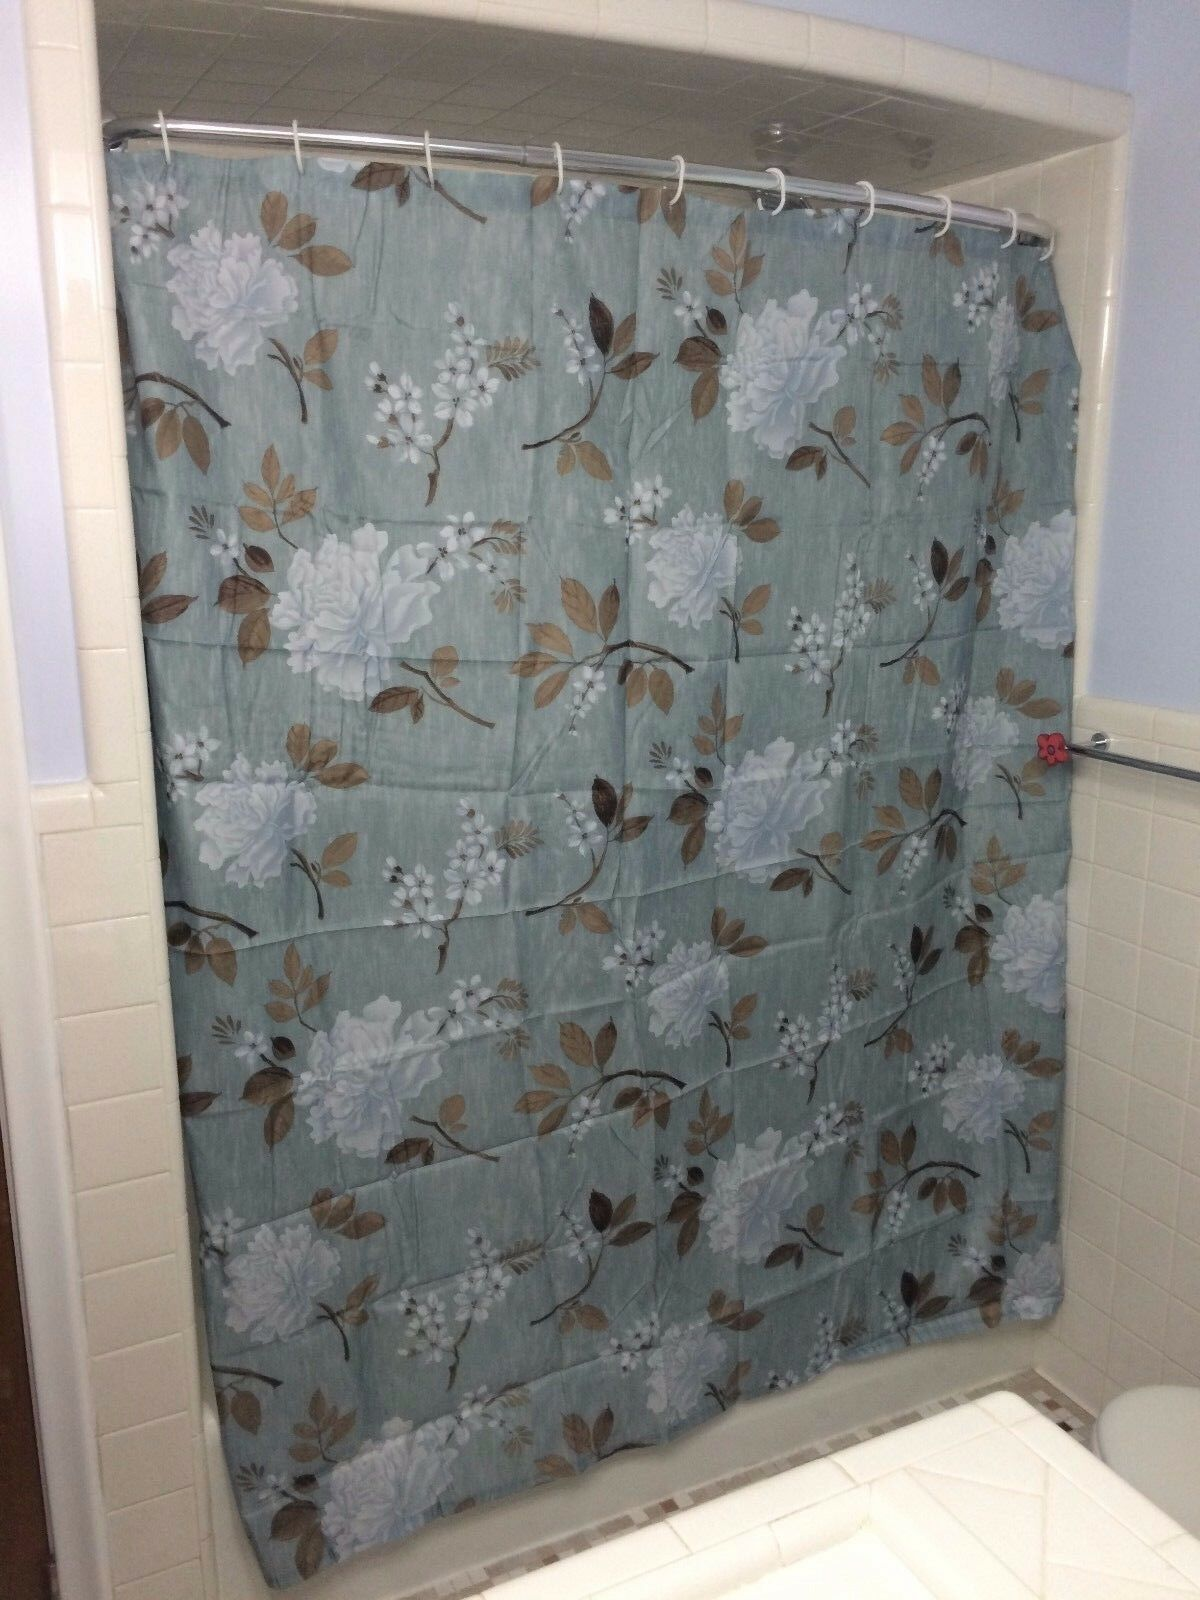 Blau Flower Floral Peony Bath Shower Curtain Weiß Hooks Decor